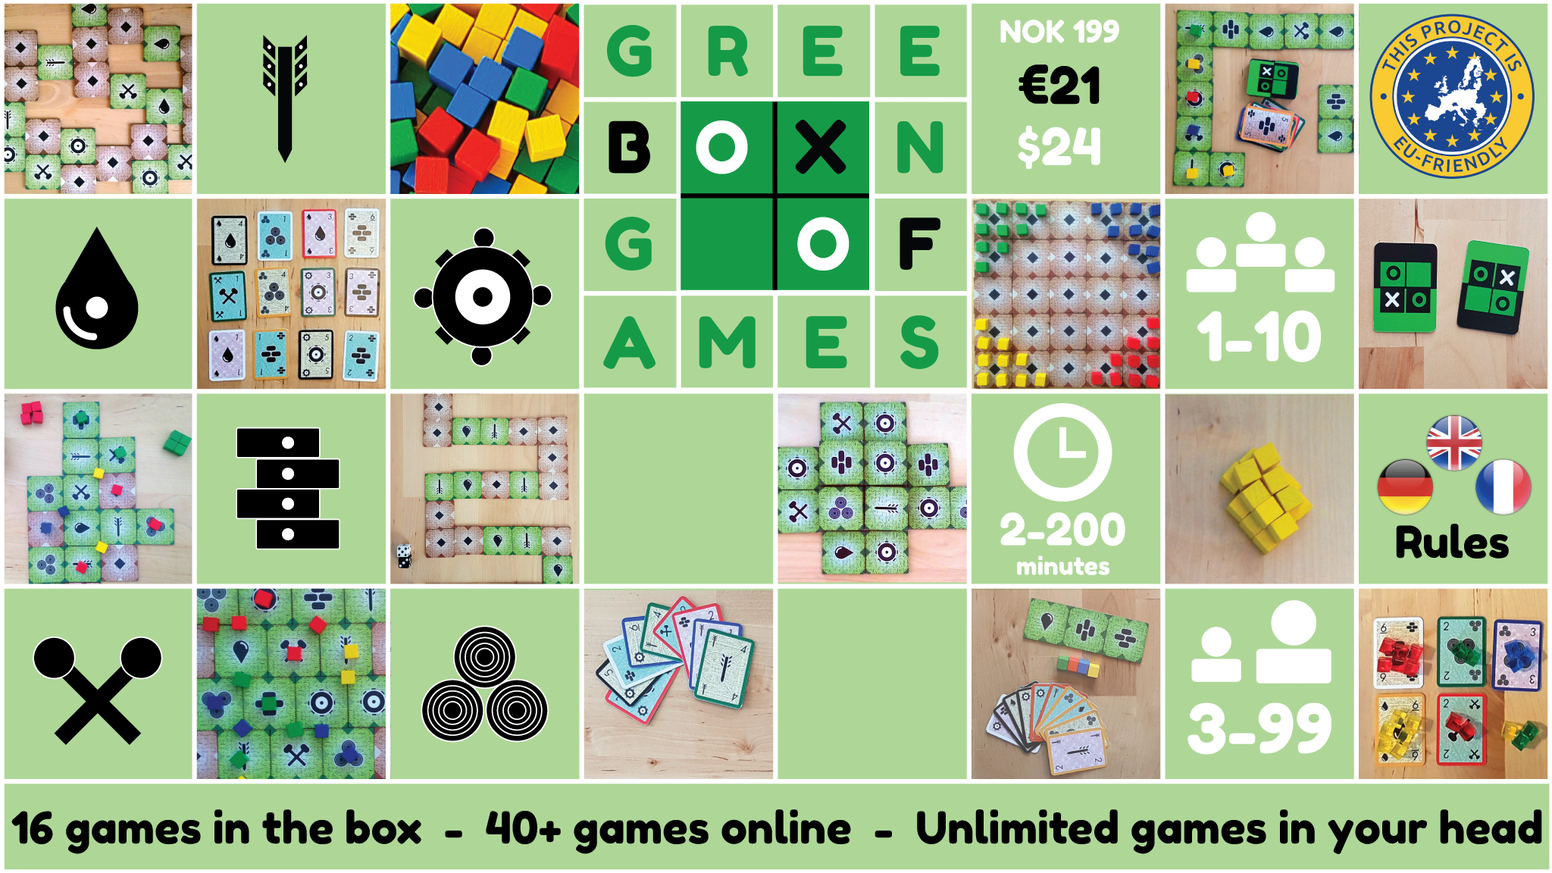 The Kickstarter campaign has ended, but the Green Box of Games is now available for preorder.